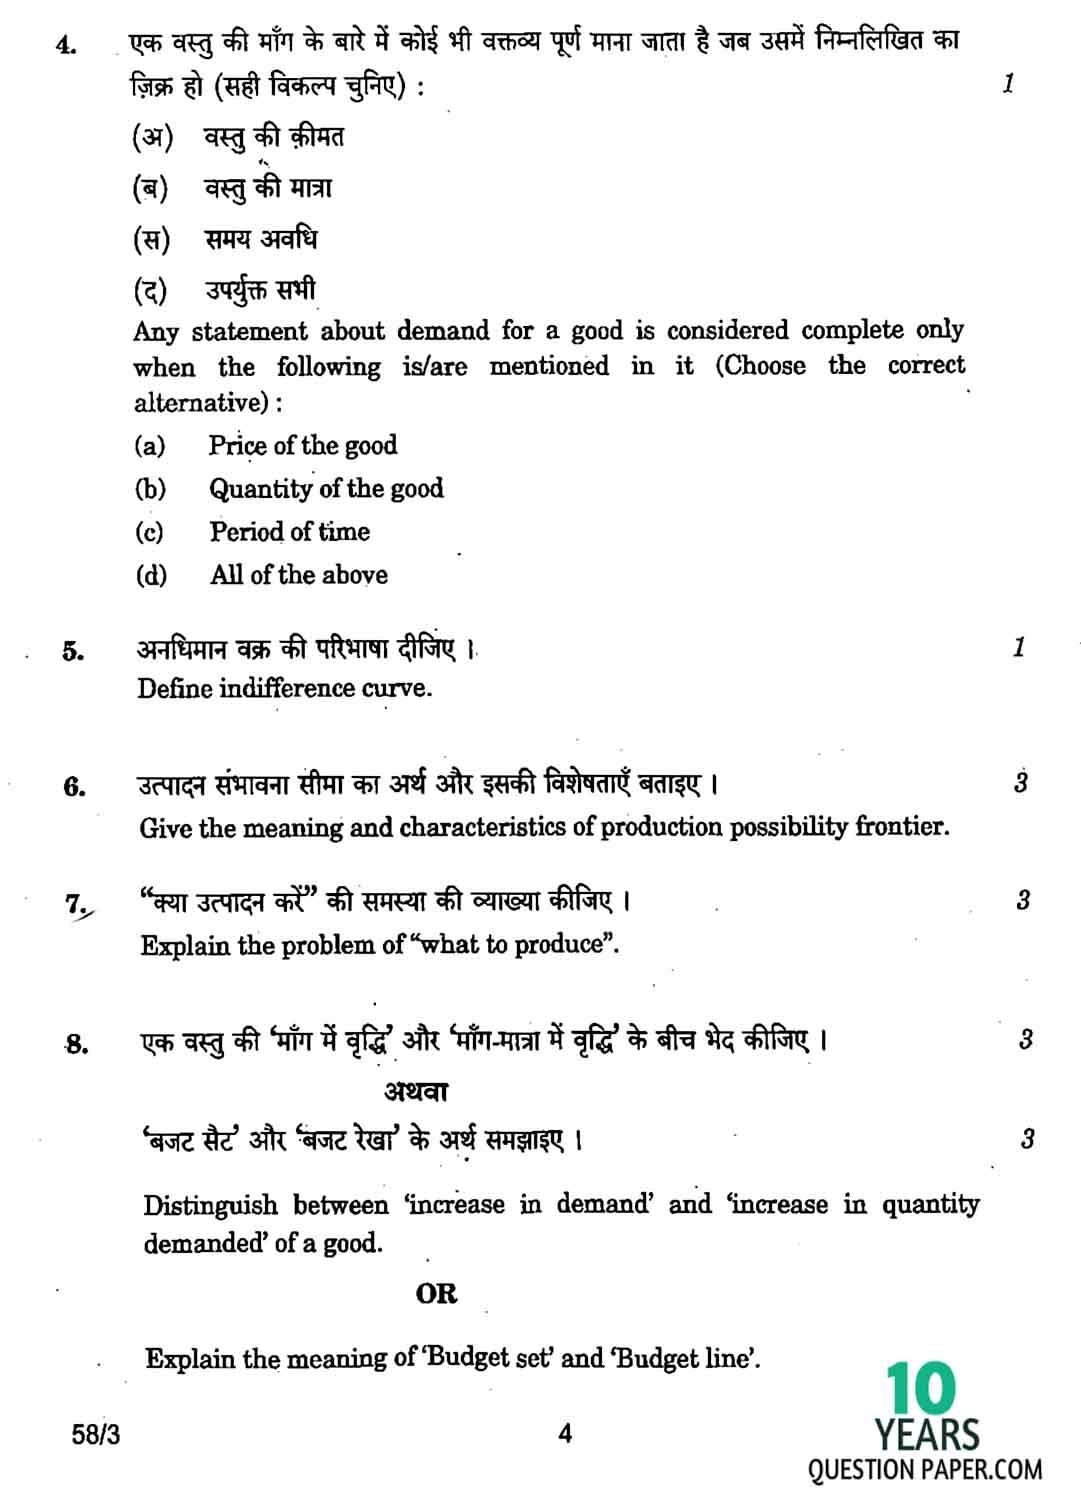 CBSE Class 12 Economics 2017 Question Paper